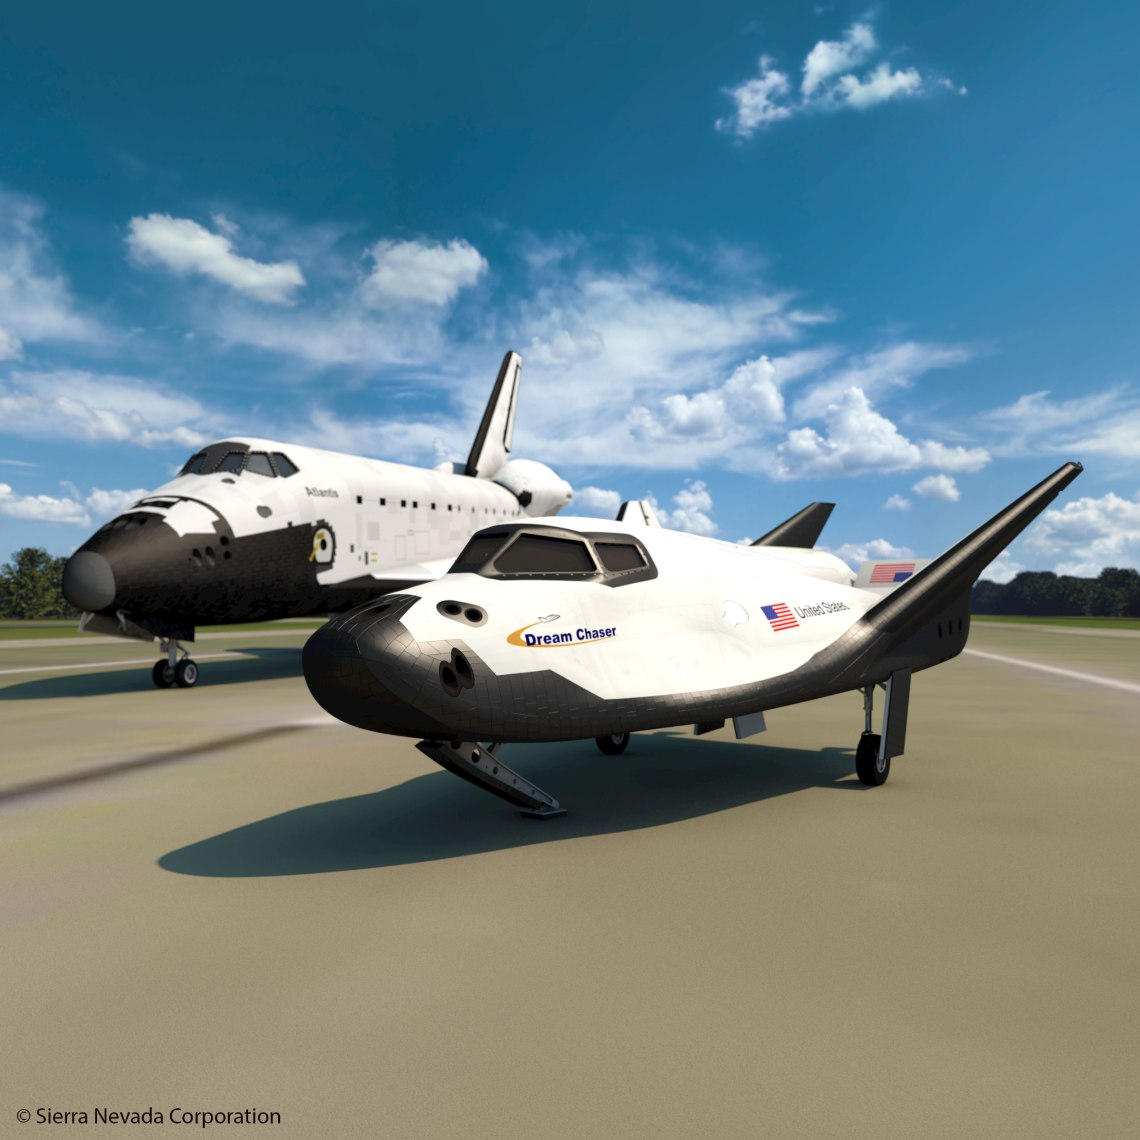 An artist's rendering of Sierra Nevada's Dream Chaser spacecraft alongside Space Shuttle Atlantis at the Shuttle Landing Facility in Florida.  Credit: SNC